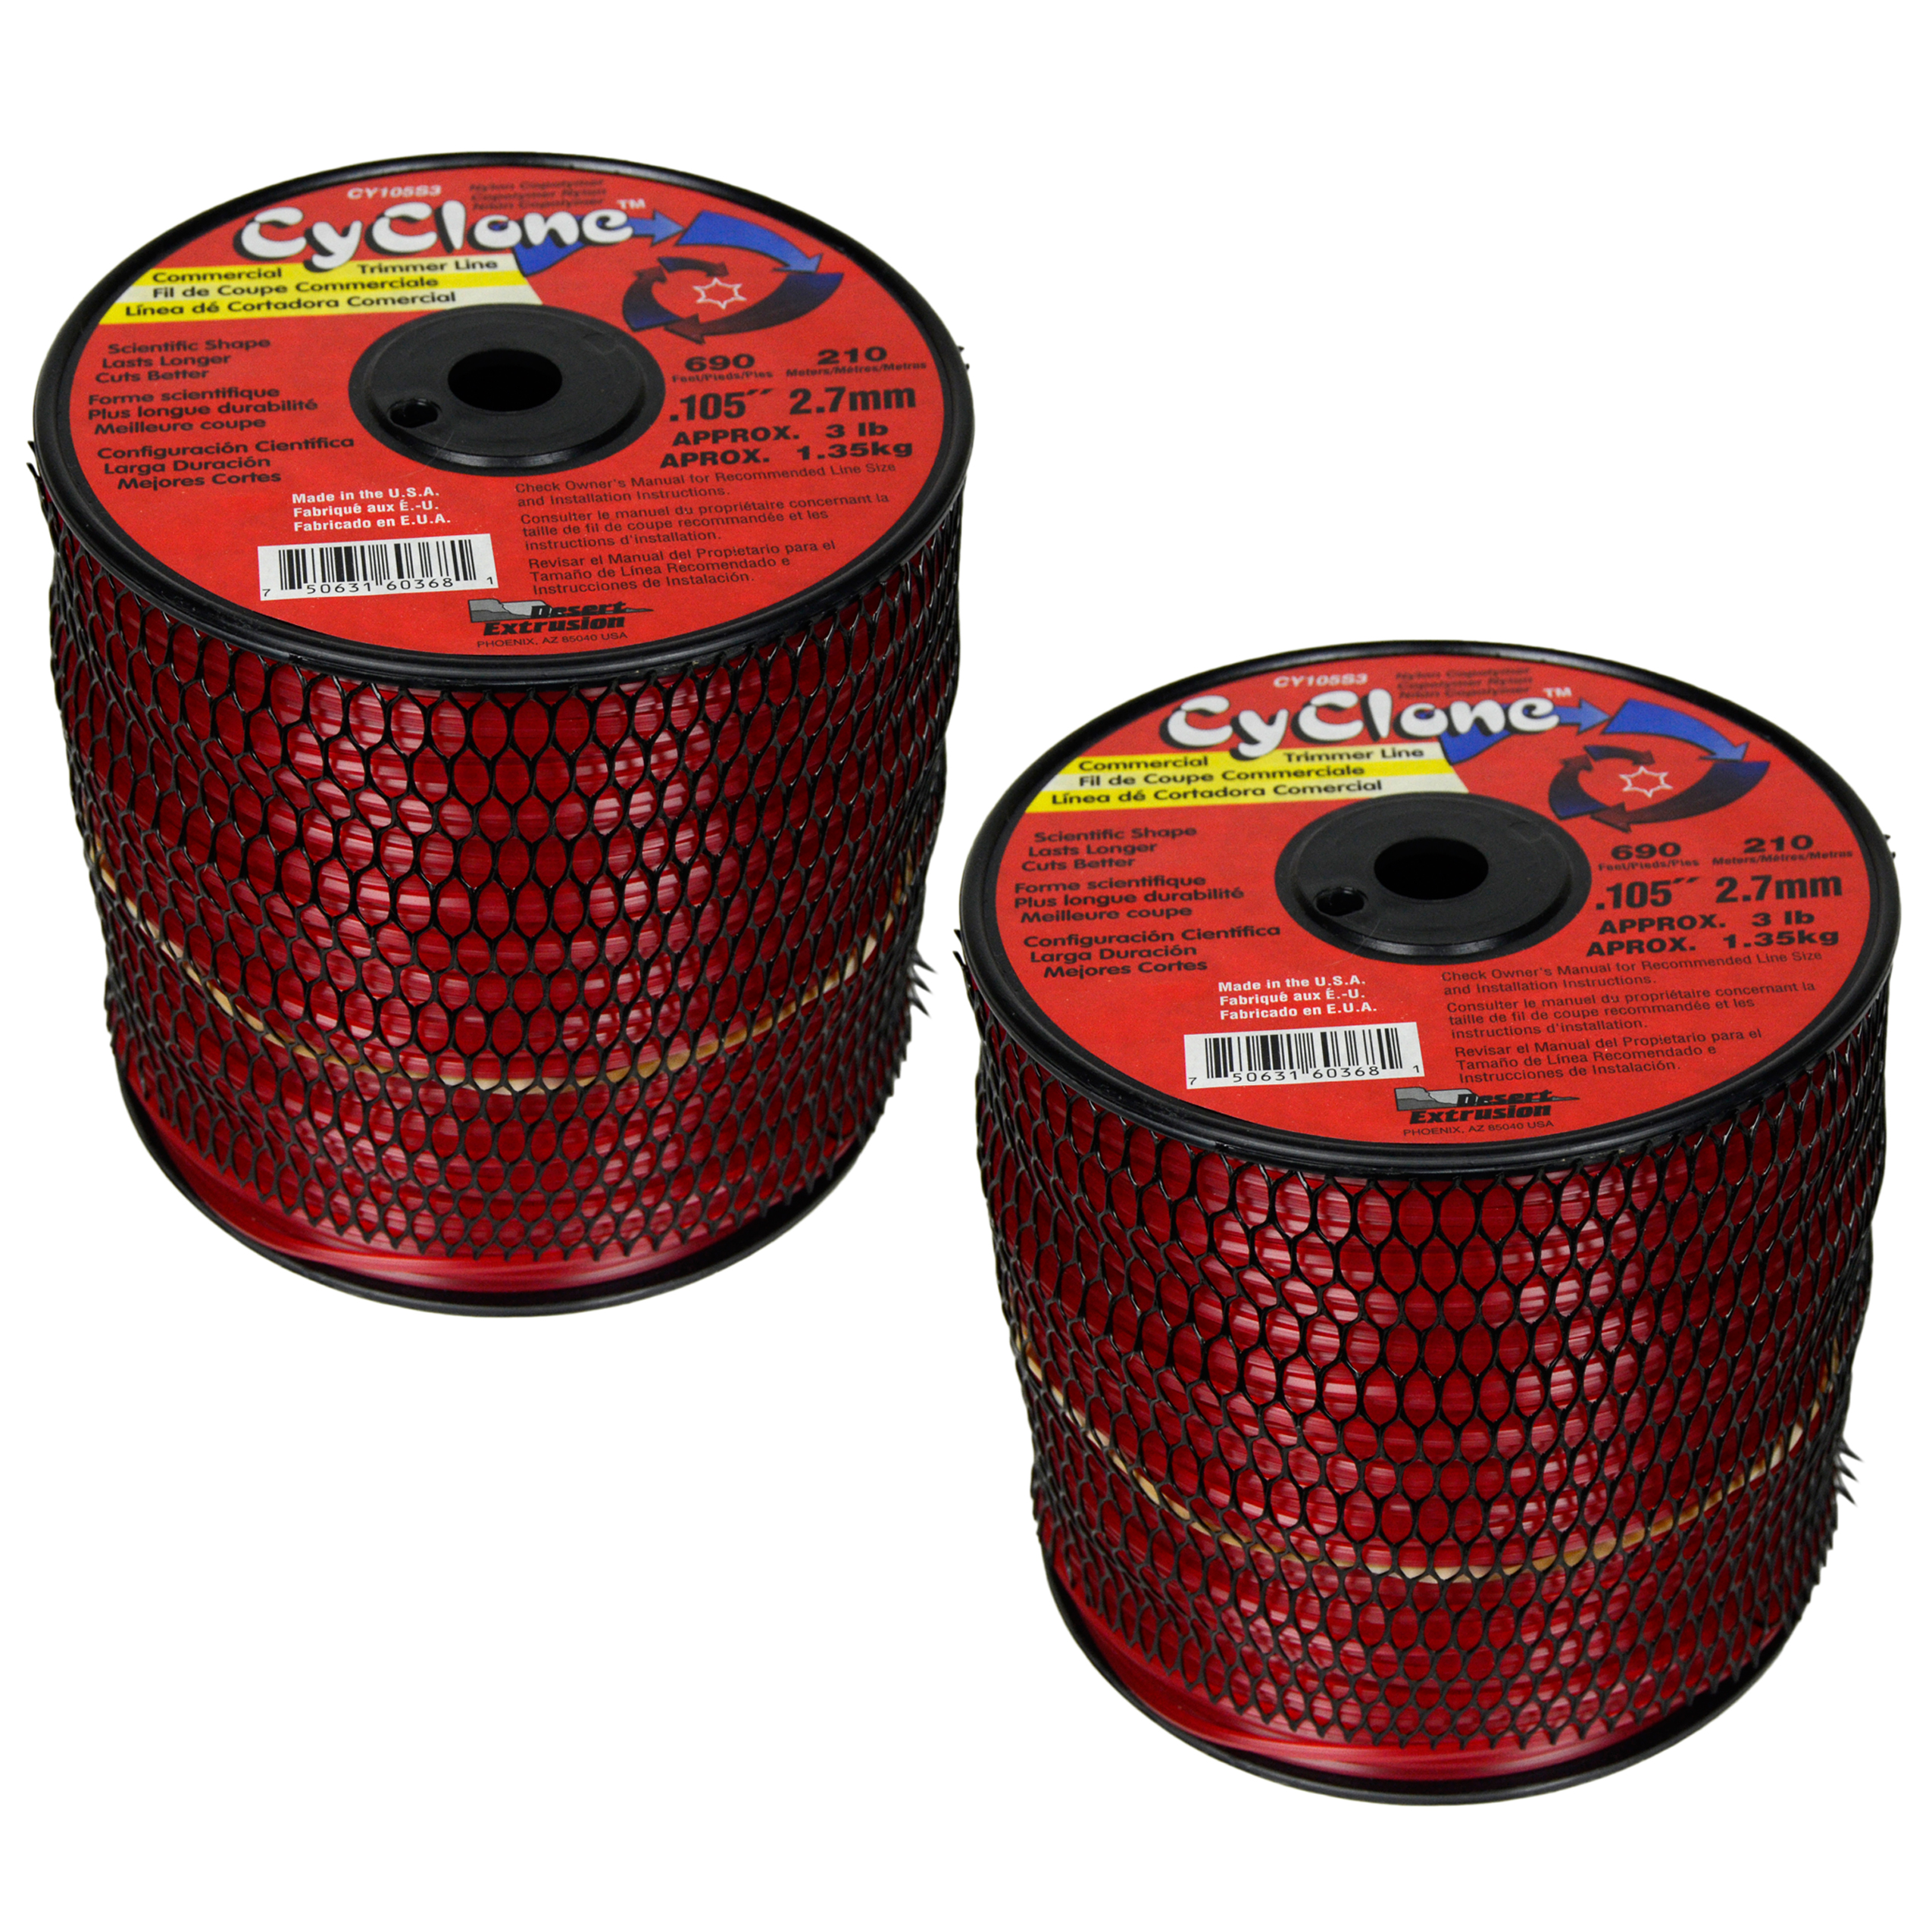 "Cyclone CY105S3 0.105"" x 690' Commercial String Trimmer Line Red (2-Pack), Made in the USA"